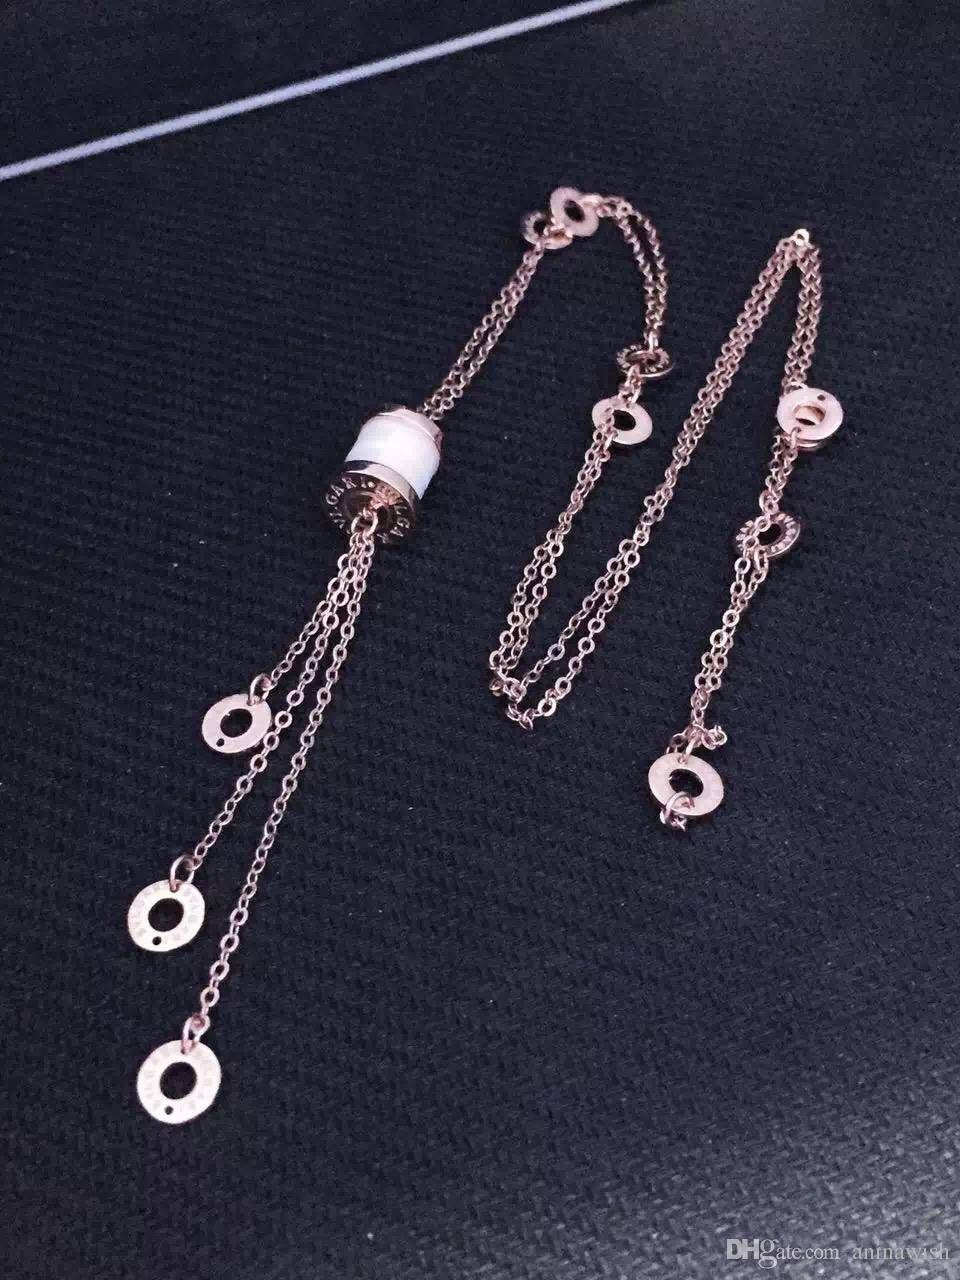 NEFFLY New fashion sweater Ceramic necklaces 925 silver necklaces long necklacces for women.